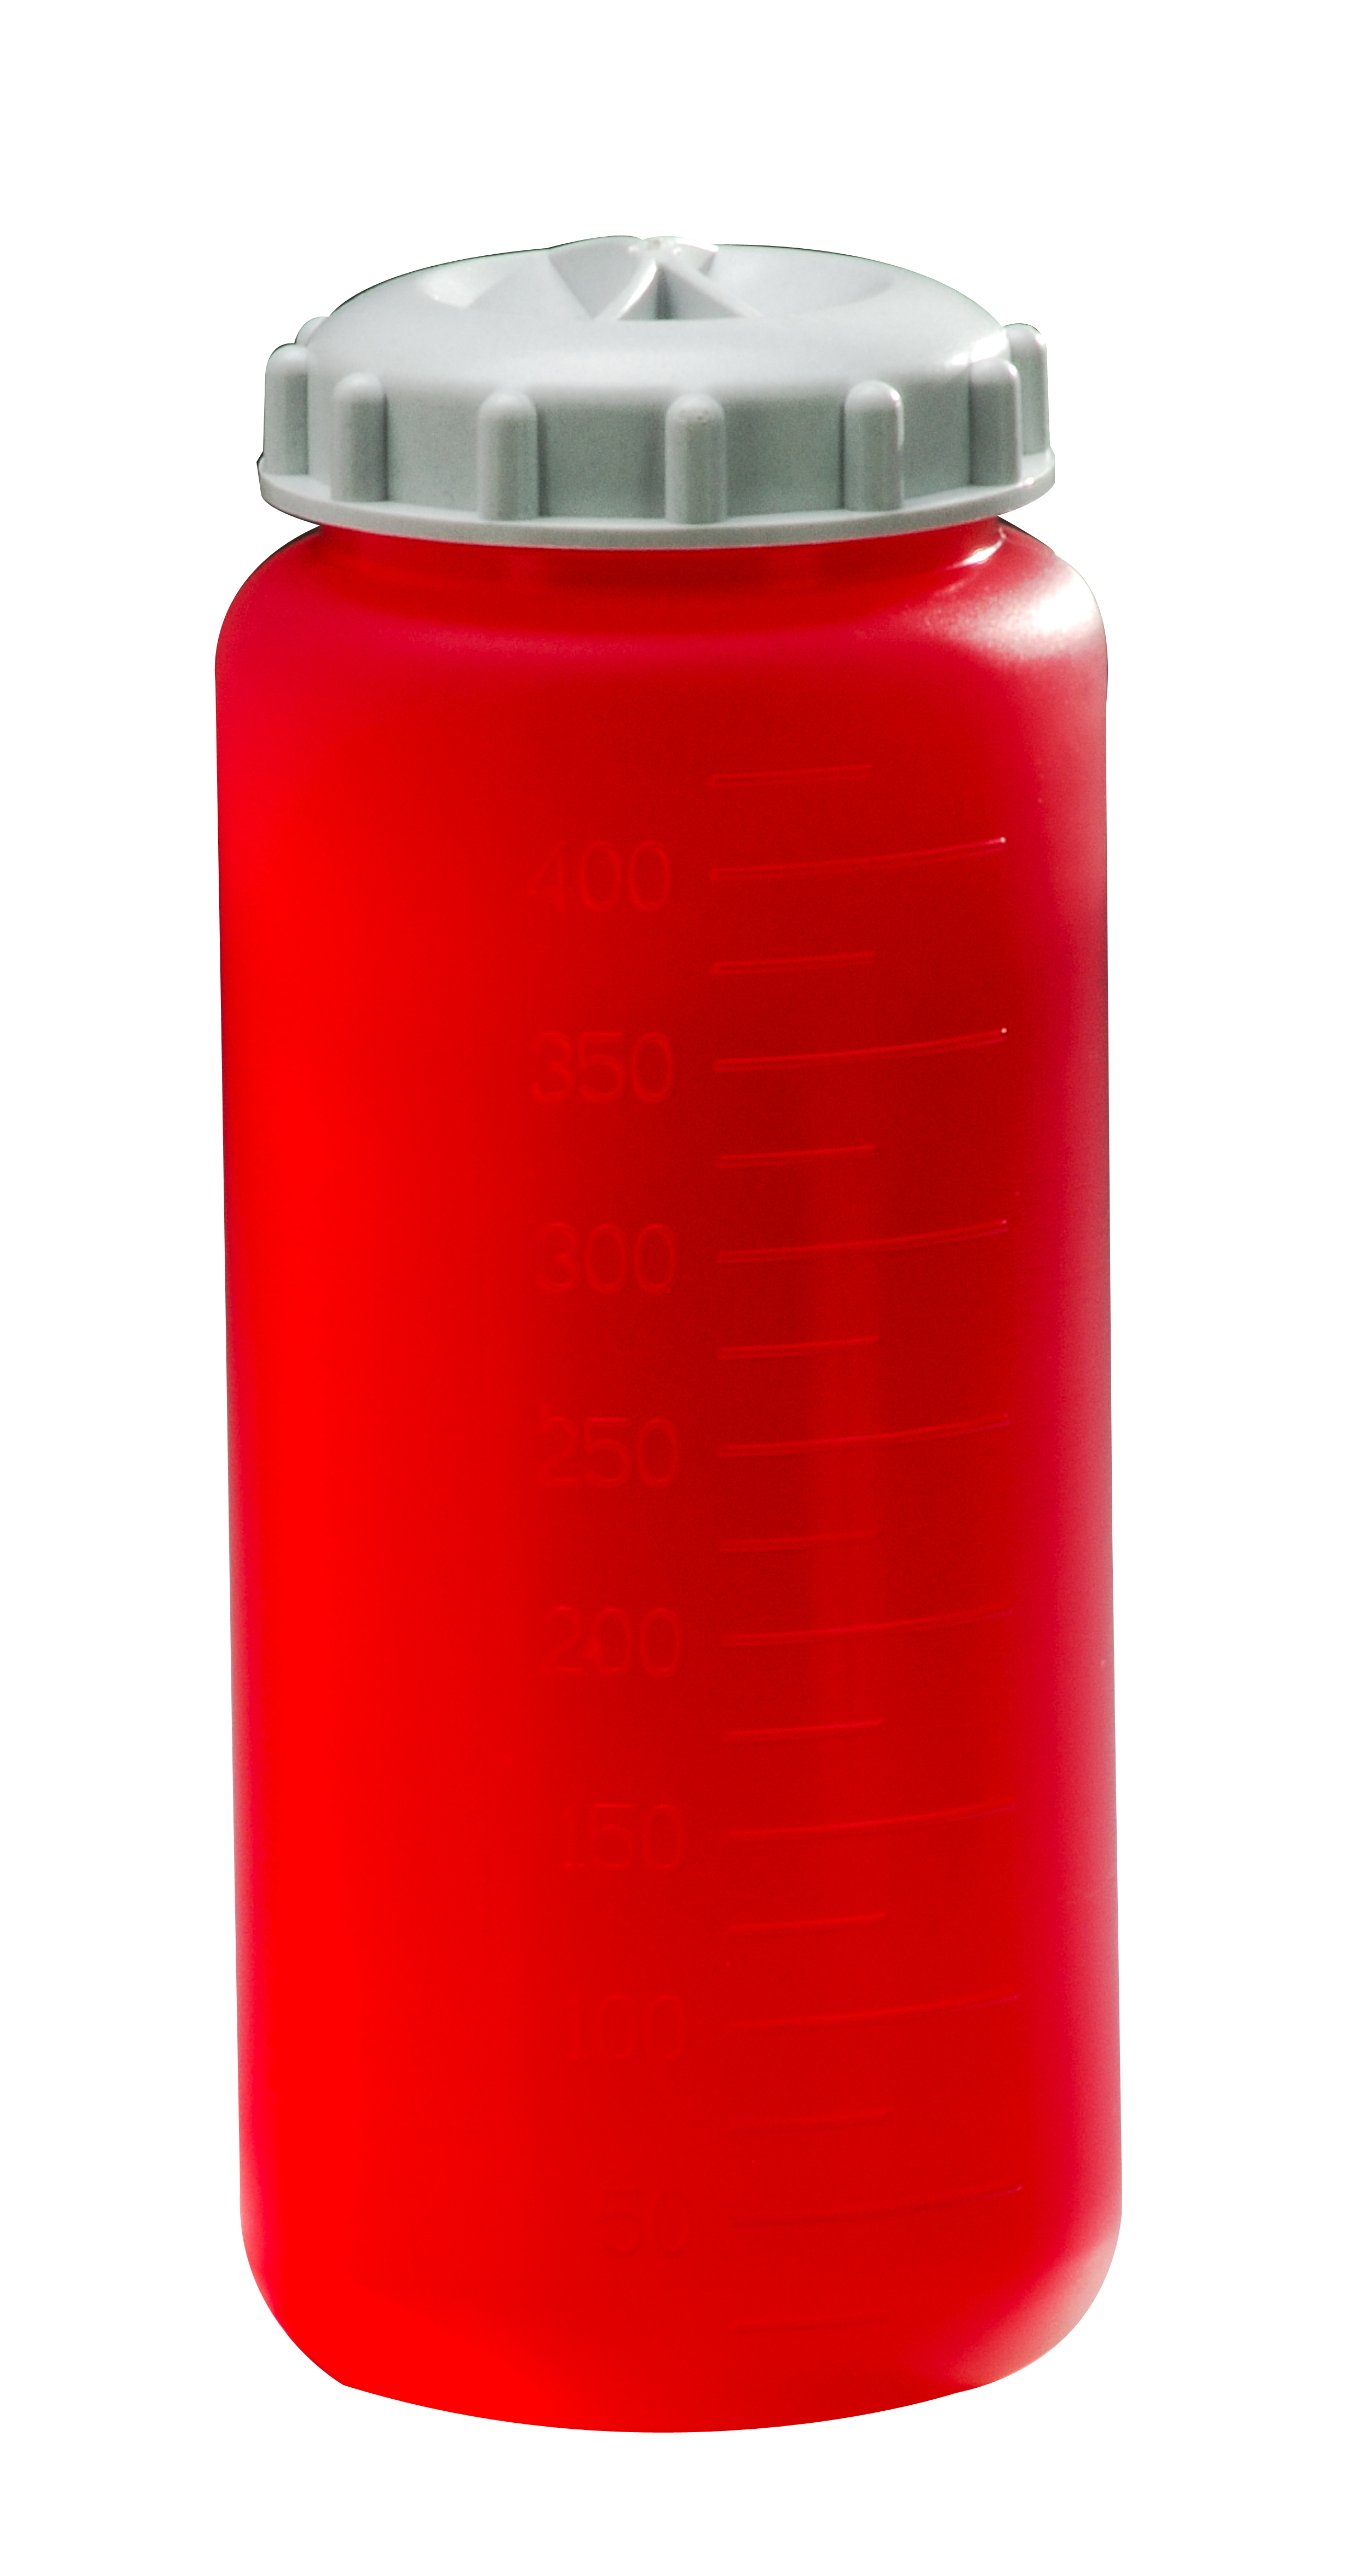 CapitolBrand CBRL-1805 Autofil 500mL Low-Speed, Graduated, Polypropylene, Nonsterile Disposable Centrifuge Bottle With Screw Cap (Pack Of 24)